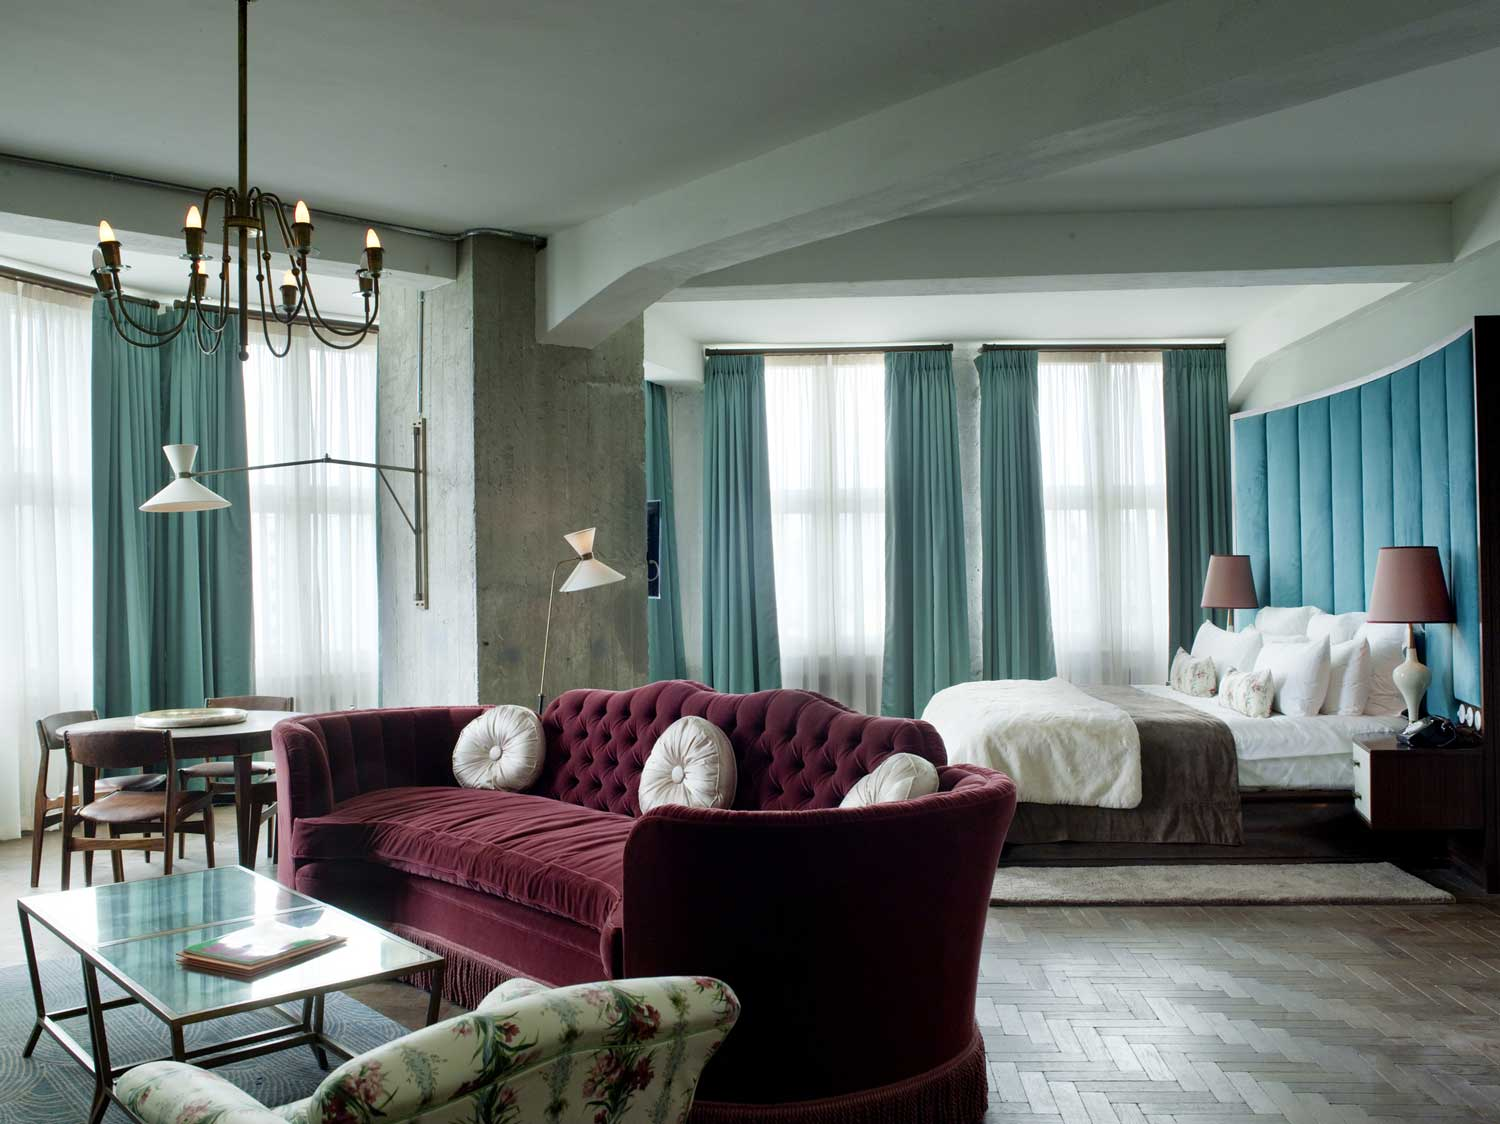 Tour of soho house s around the world yellowtrace for Sleeping room interior design